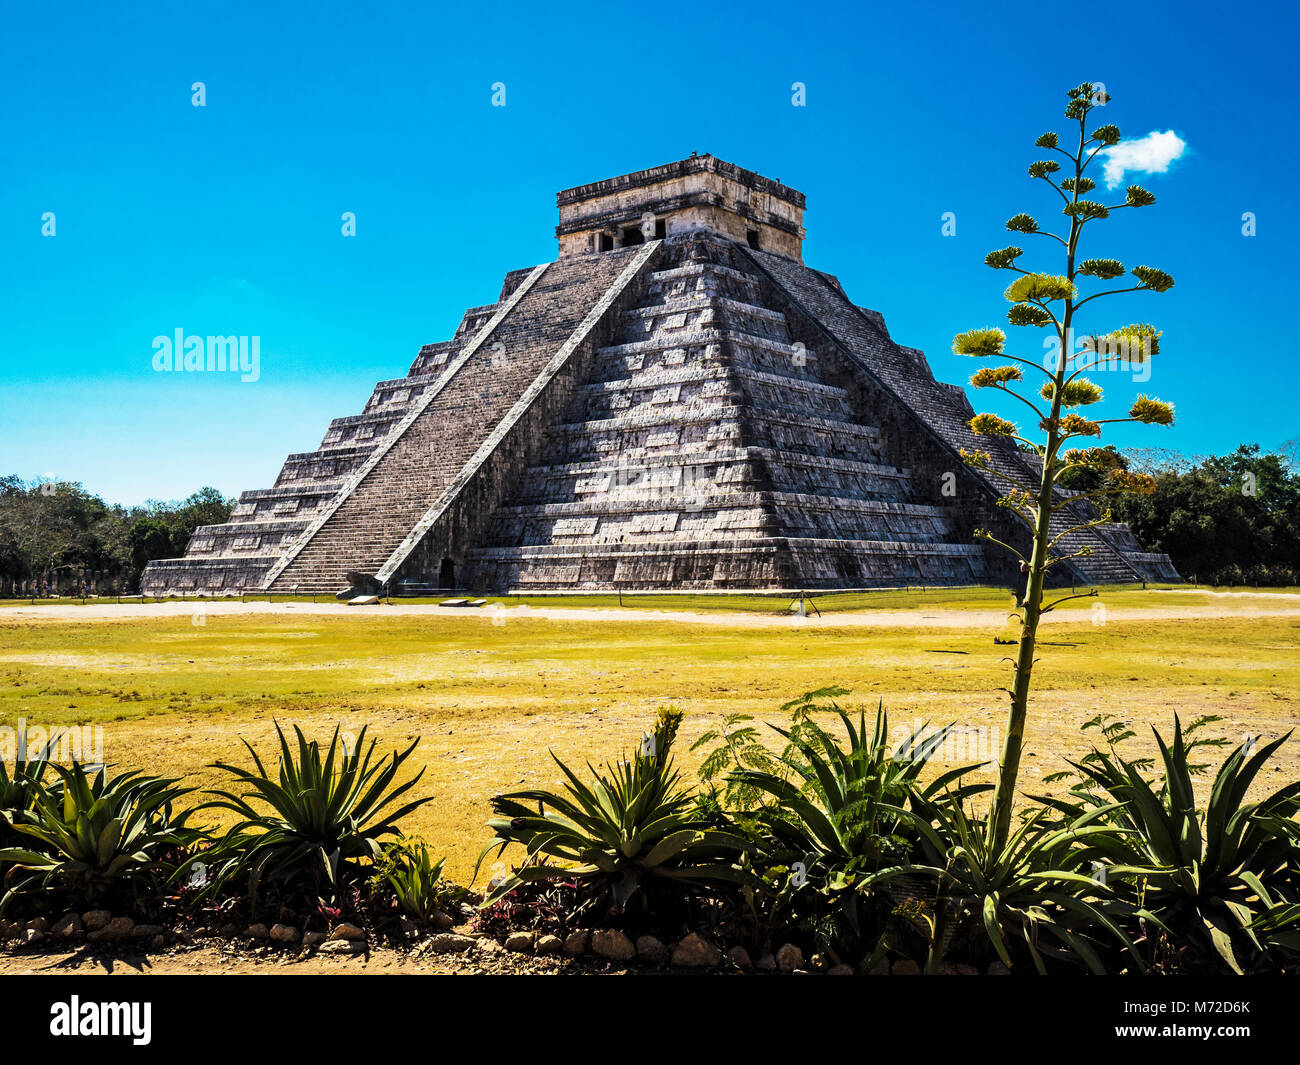 El Castillo, The Pyramid of Kukulkán, is the Most Popular Building in the UNESCO Mayan Ruin of Chichen Itza - Stock Image